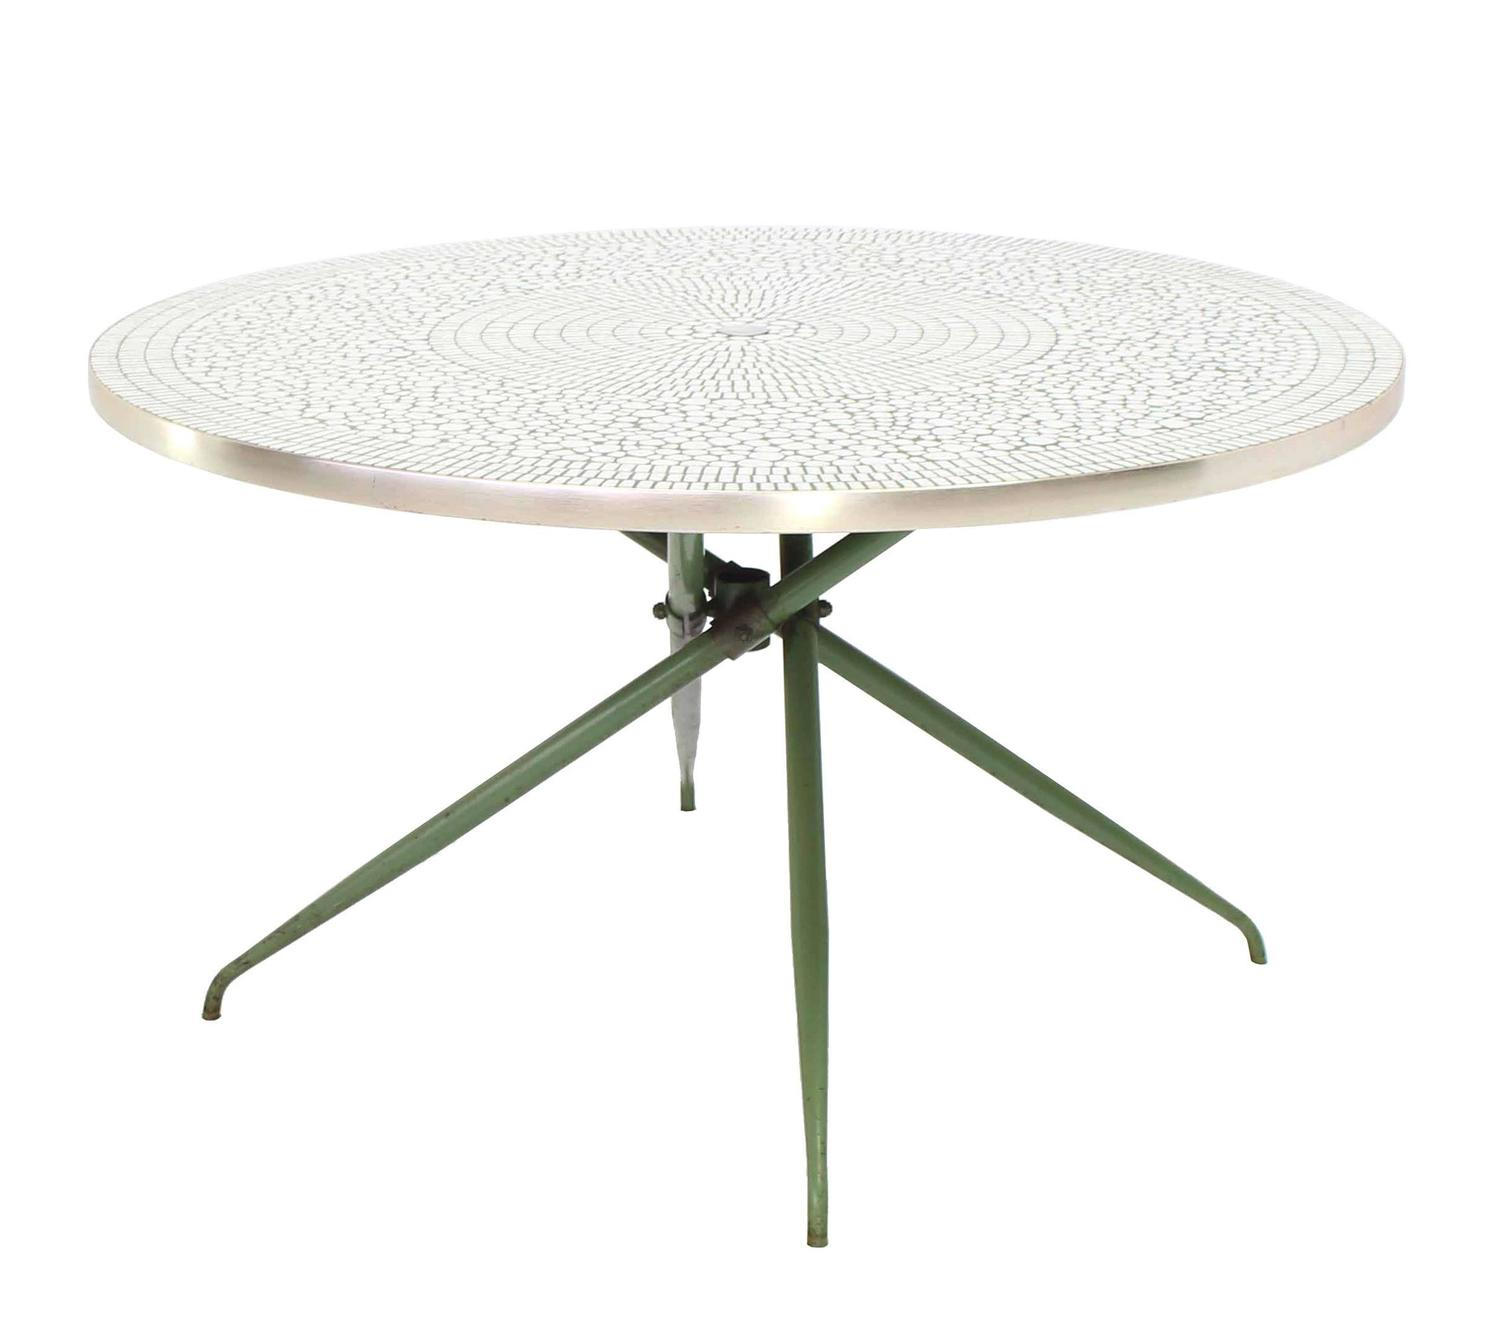 Mosaic Top Round Outdoor Table For Sale At 1stdibs